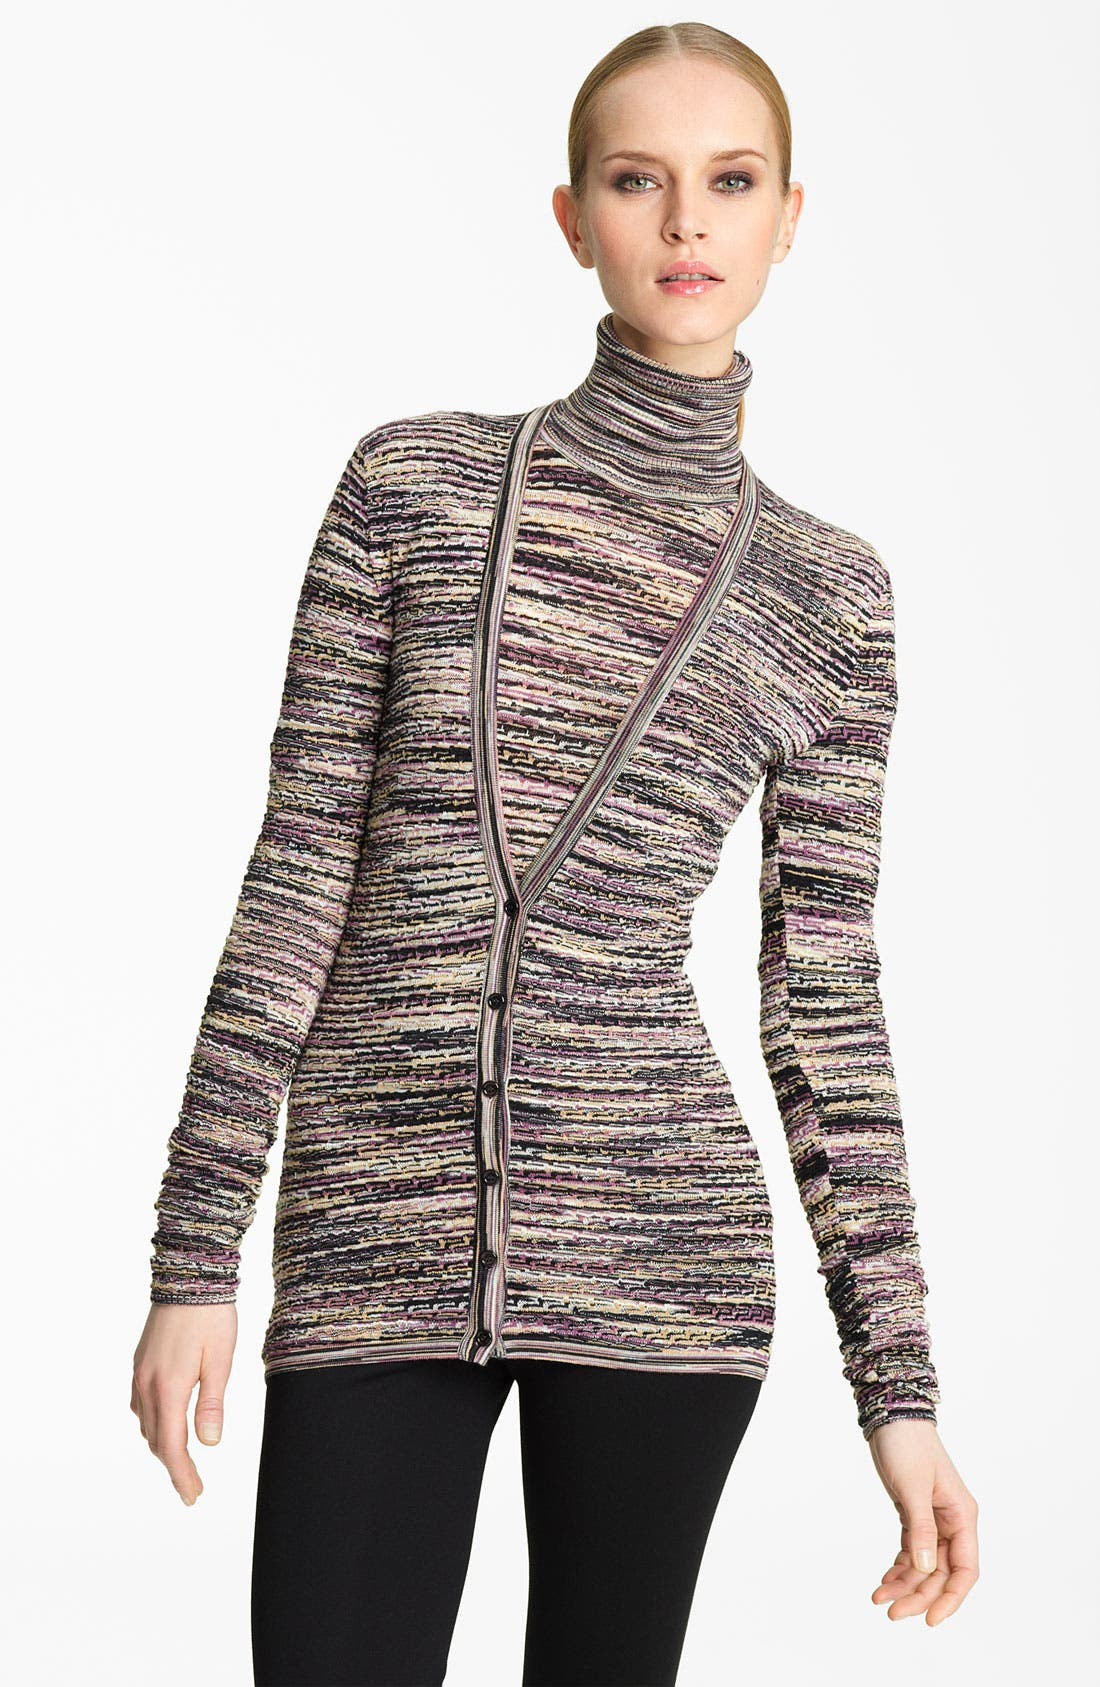 Alternate Image 1 Selected - Missoni Knit Cardigan